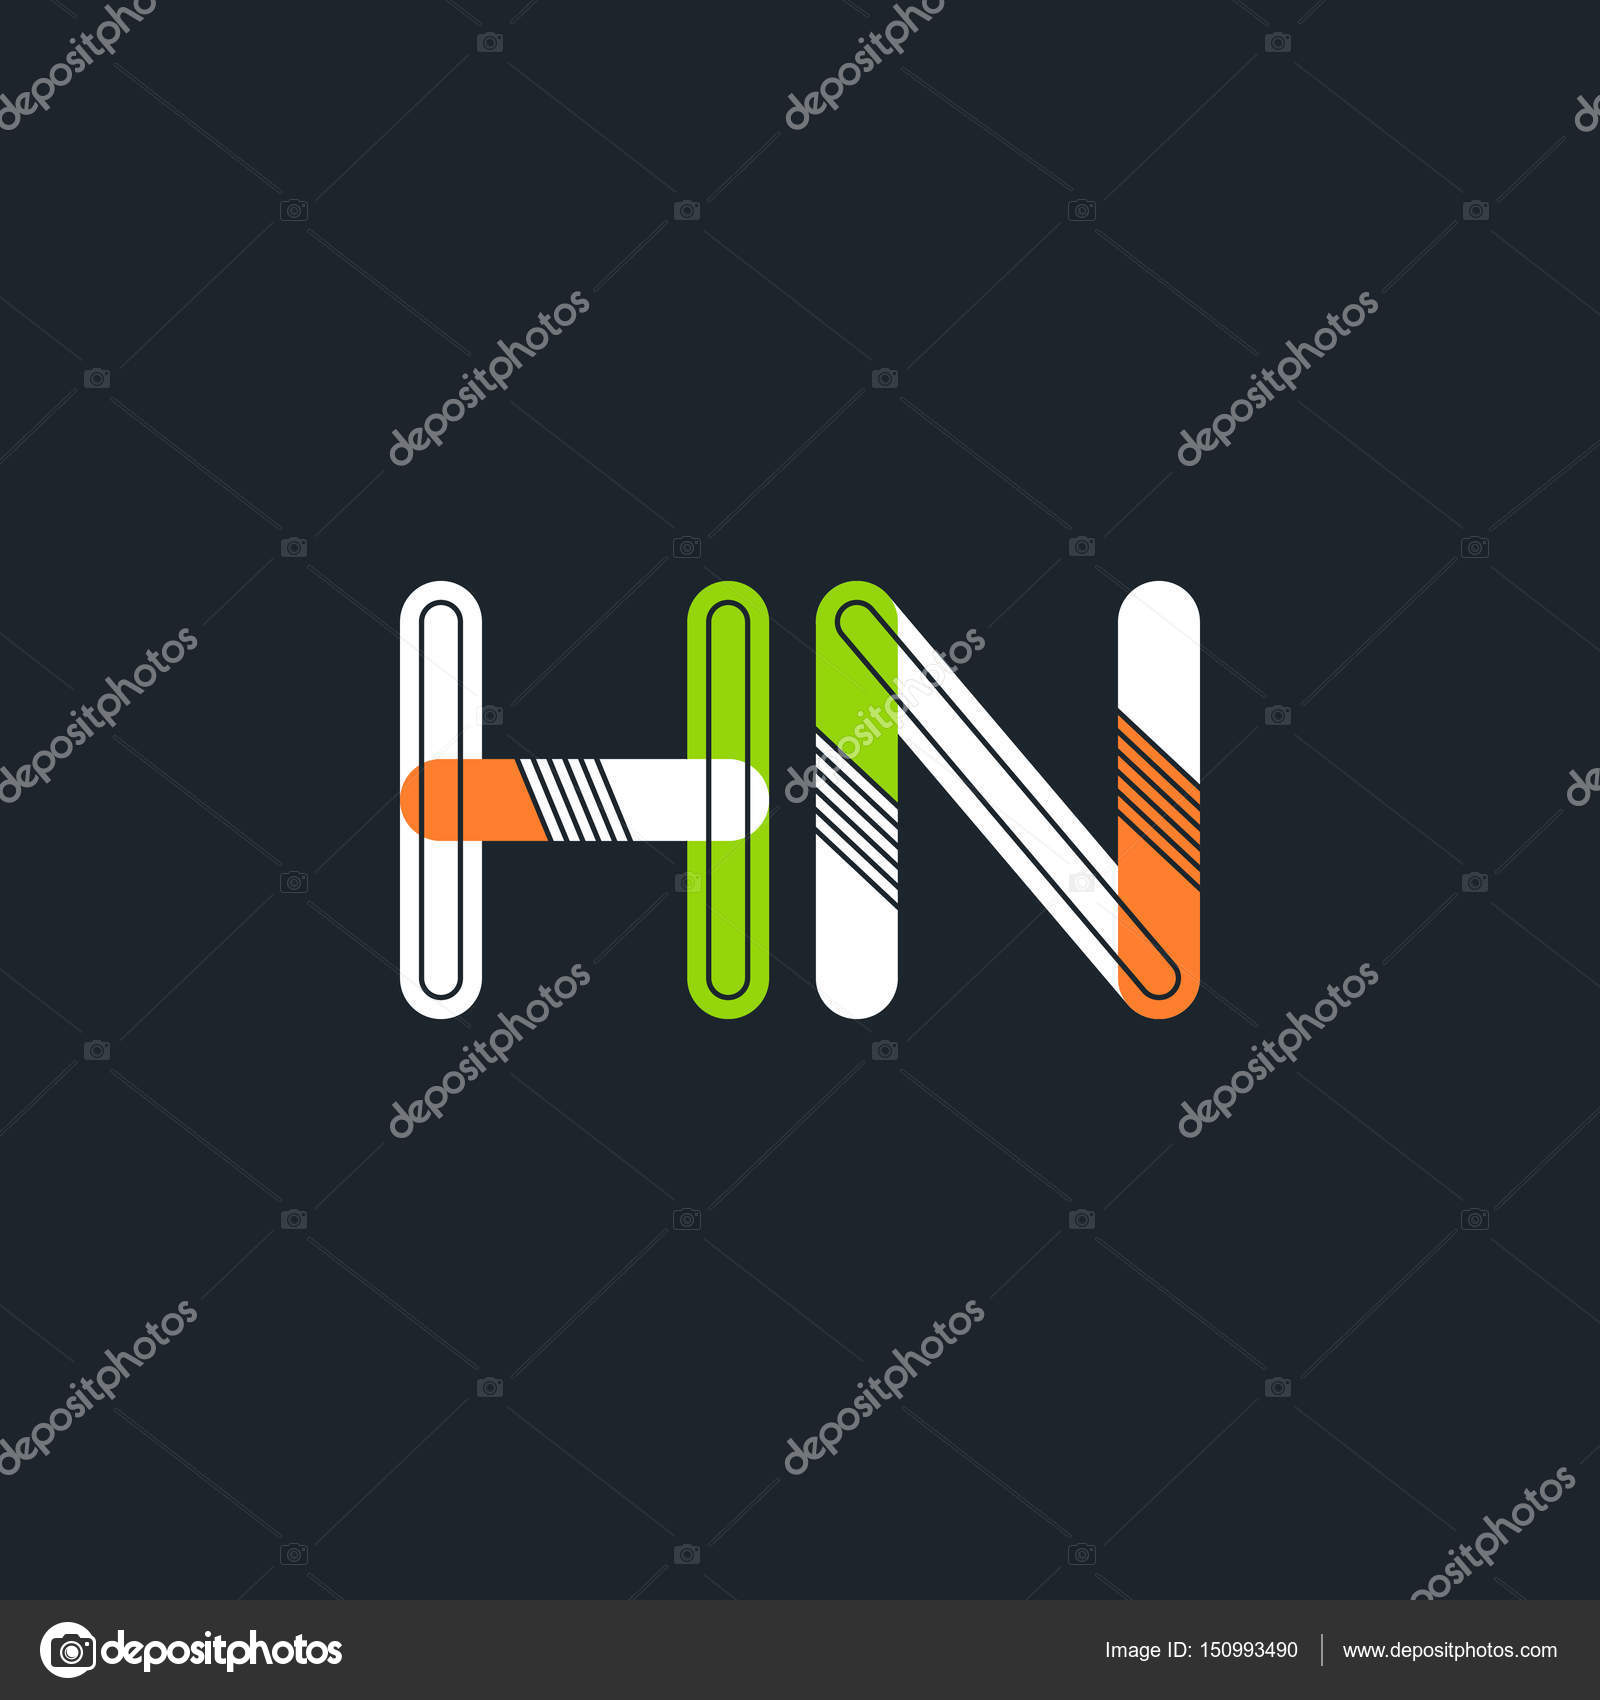 HN connected letters logo — St...